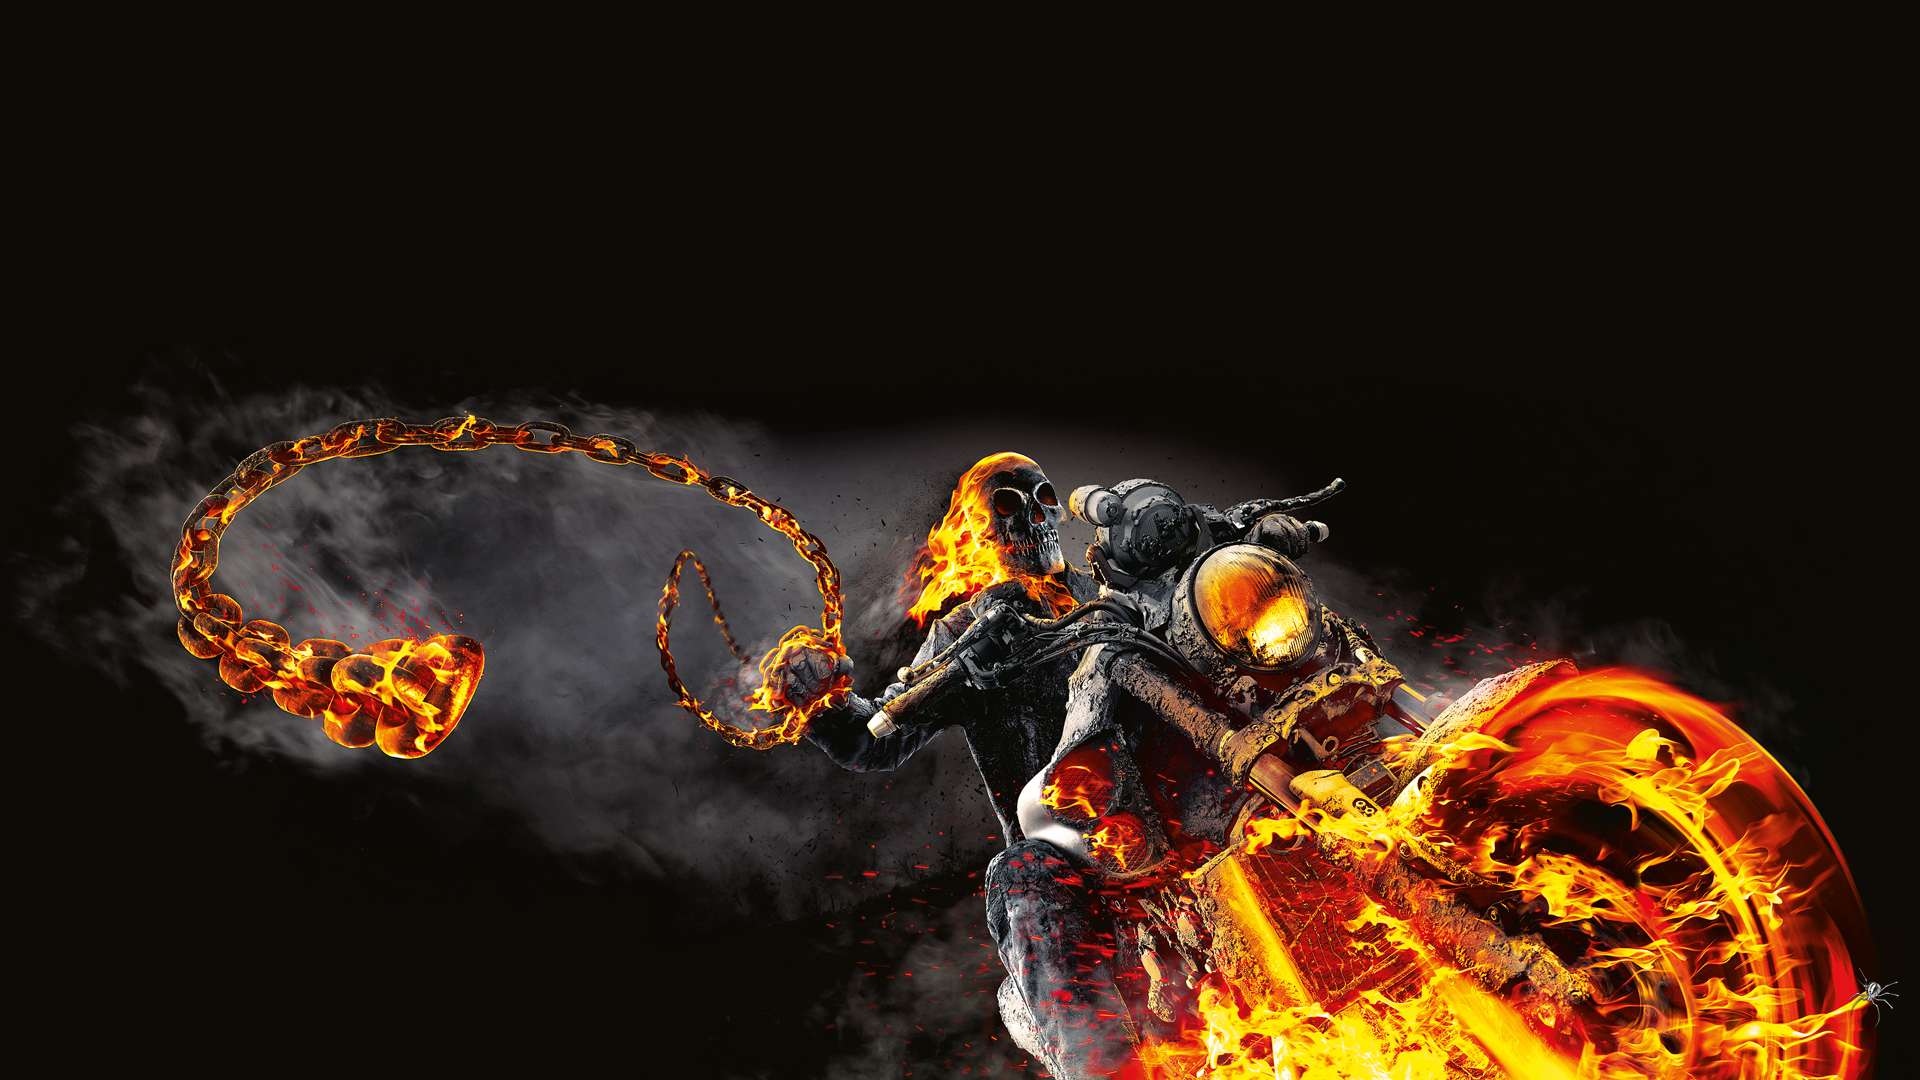 Ghost Rider 2   1920x1080 1   hebusorg   High Definition Wallpapers 1920x1080